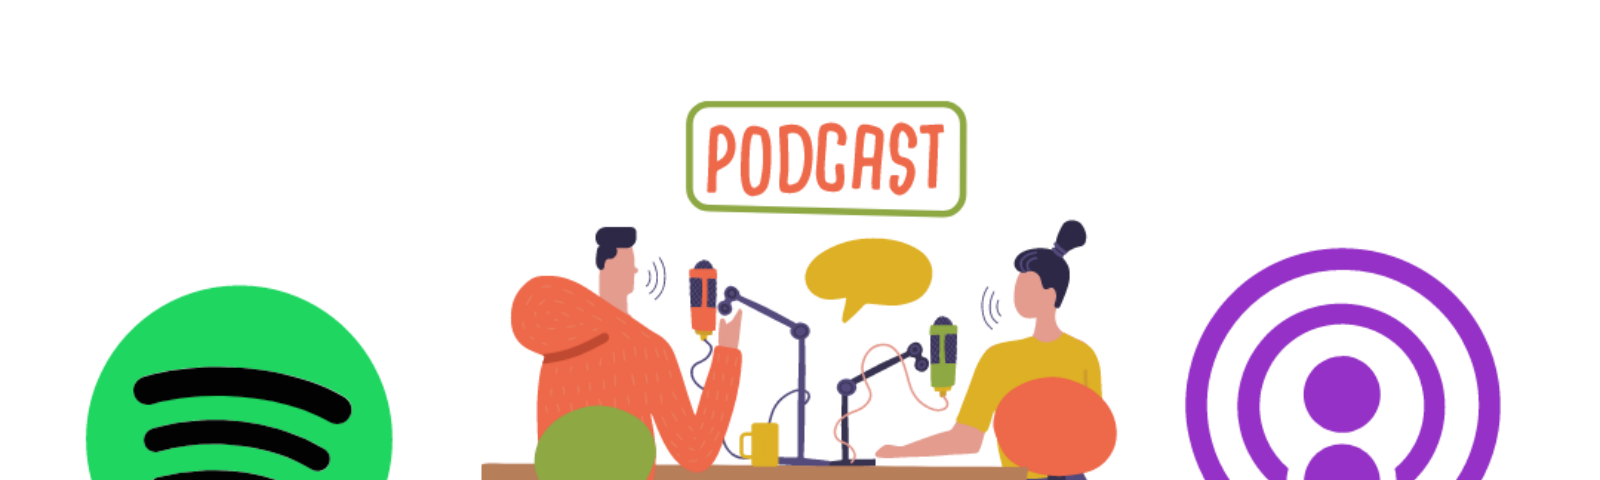 What are the best podcast apps? Spotify, Apple, and Google aren't cutting it